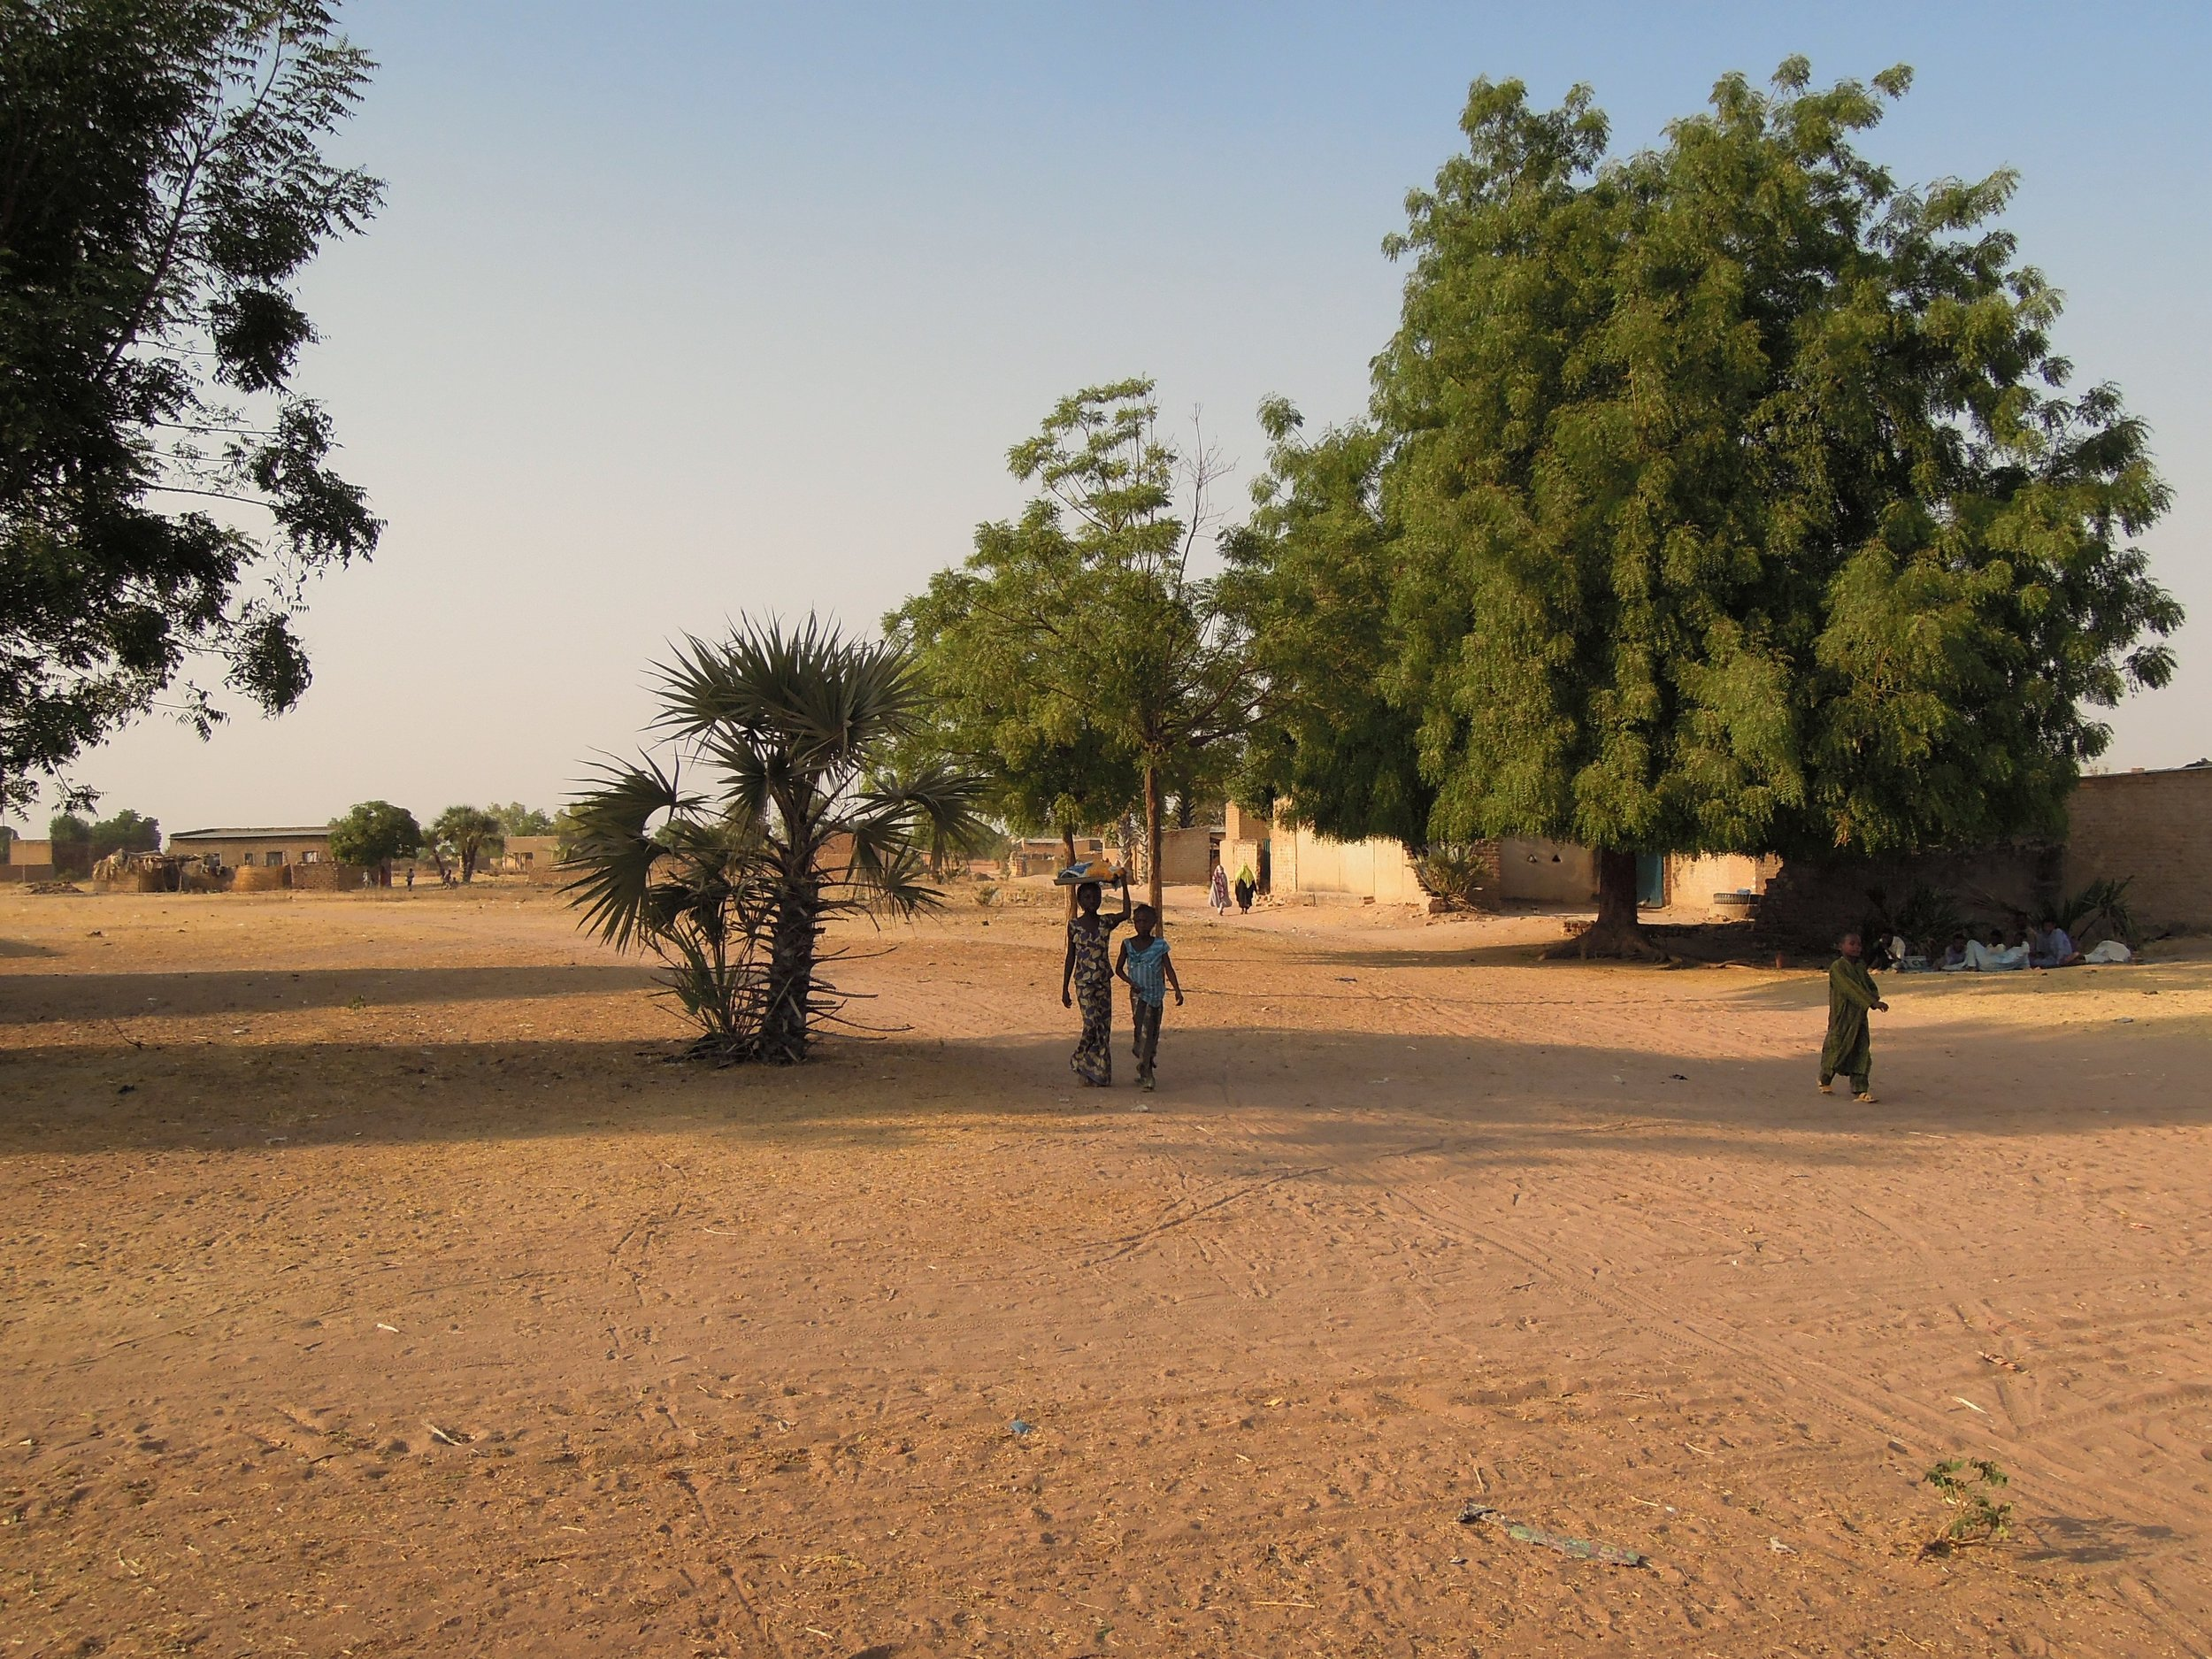 Much of our time in Chad was spent in Kelo, a city of around 50,000 people. Kelo is very hot and dry due to its location in the Sahel region of Africa, just south of the Sahara Desert.